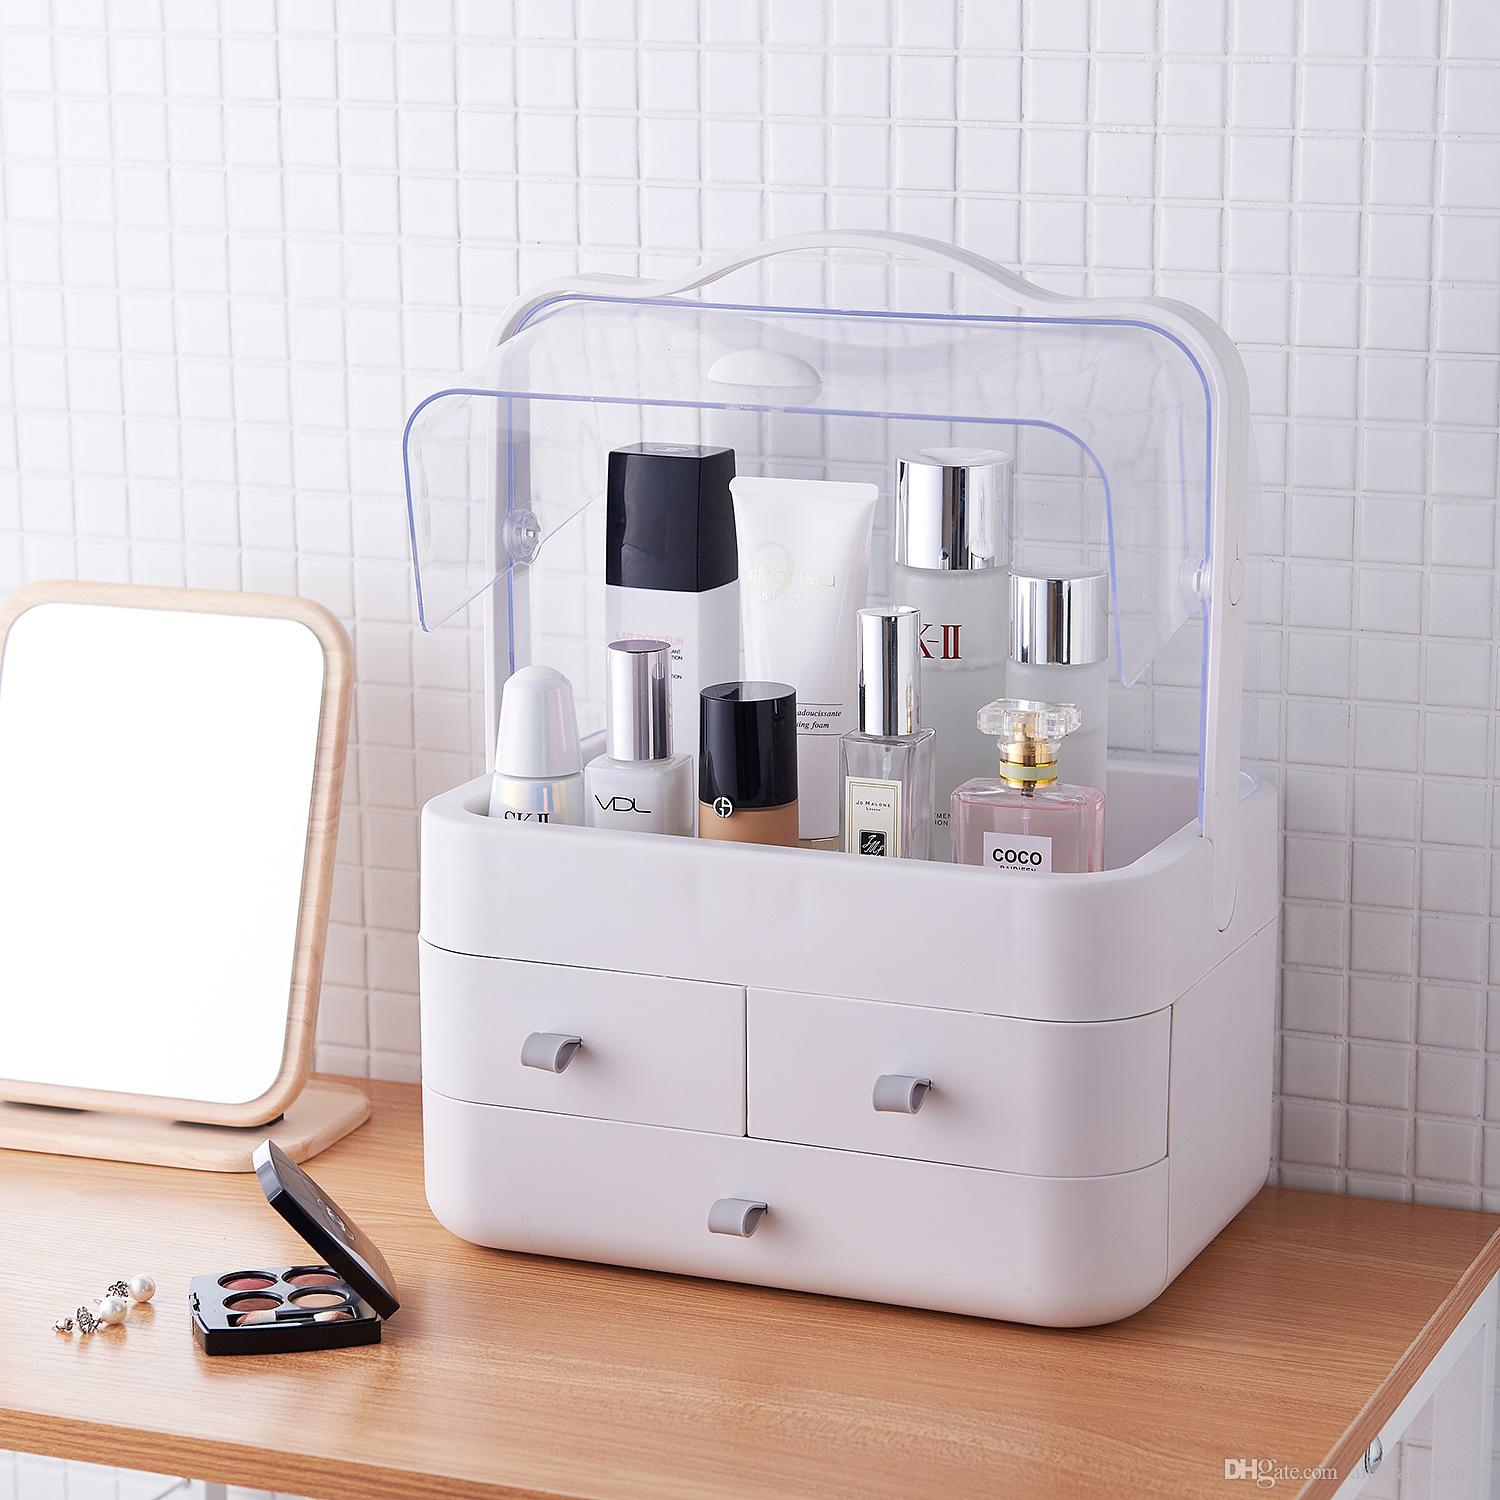 Portable Makeup Storage Box With Holder Superior Dust Proof Cosmetic Organizer Water Proof For Bathroom Dresser Vanity And Countertop